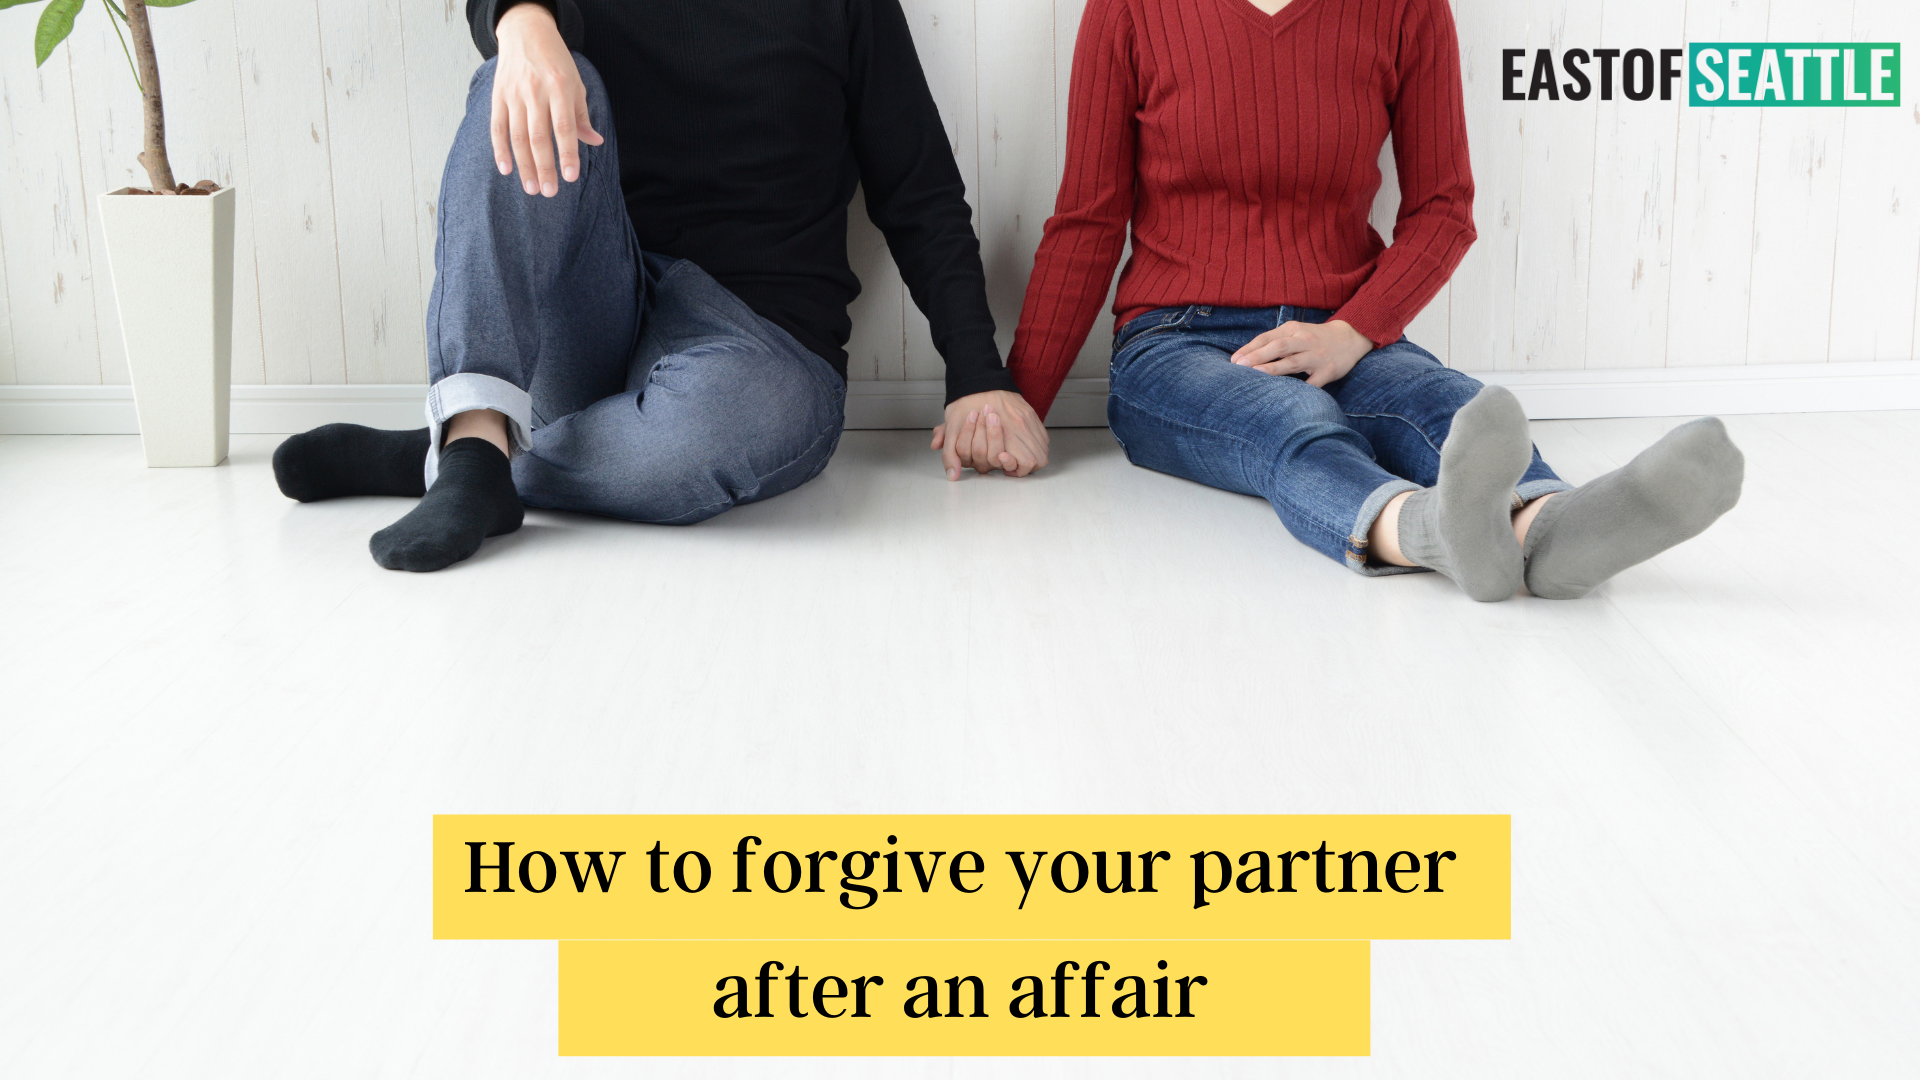 How to forgive your partner after an affair